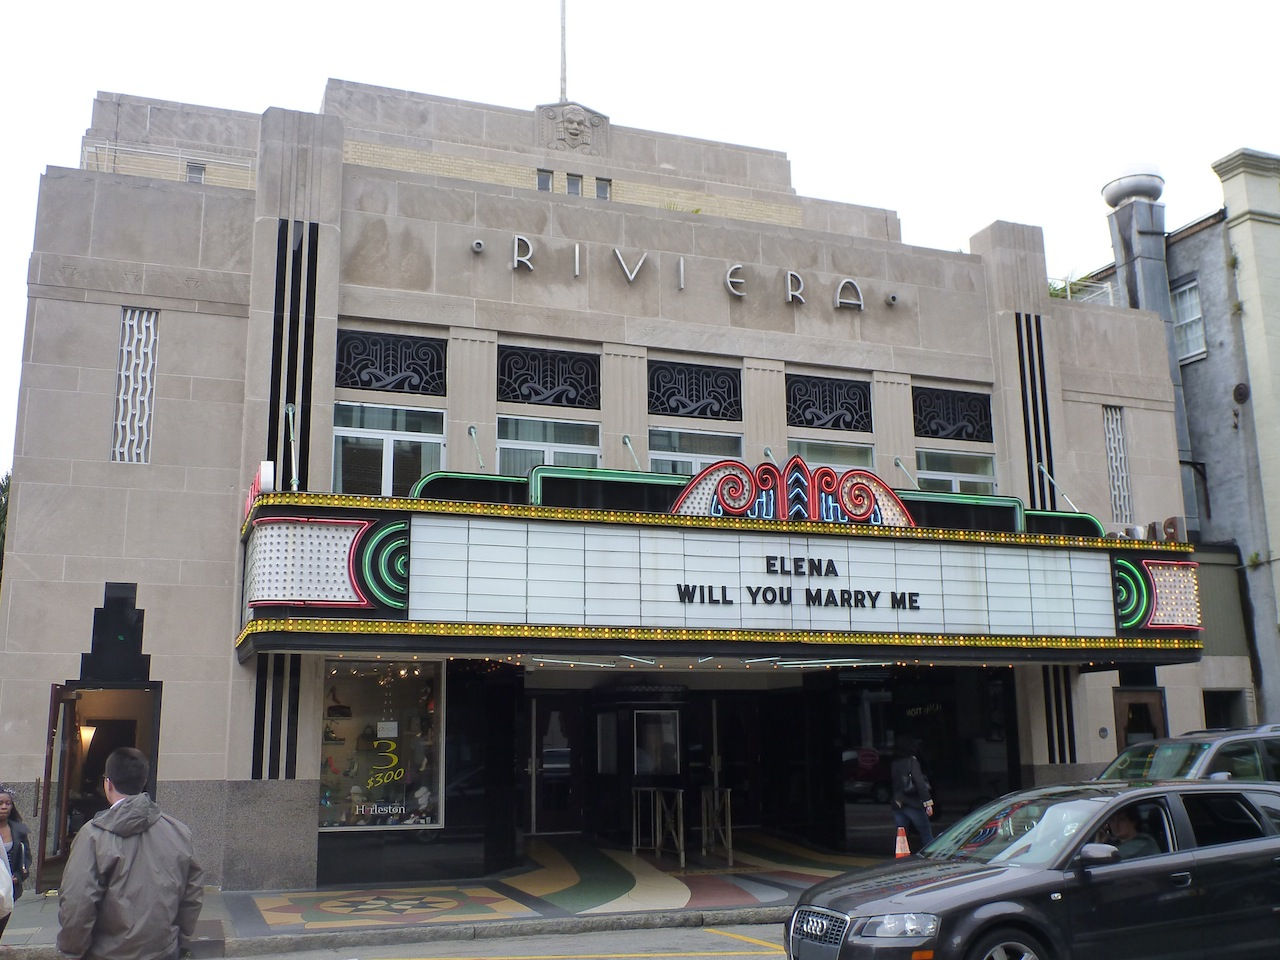 An Old Movie Theater, Still In Business, With A Special Sign.